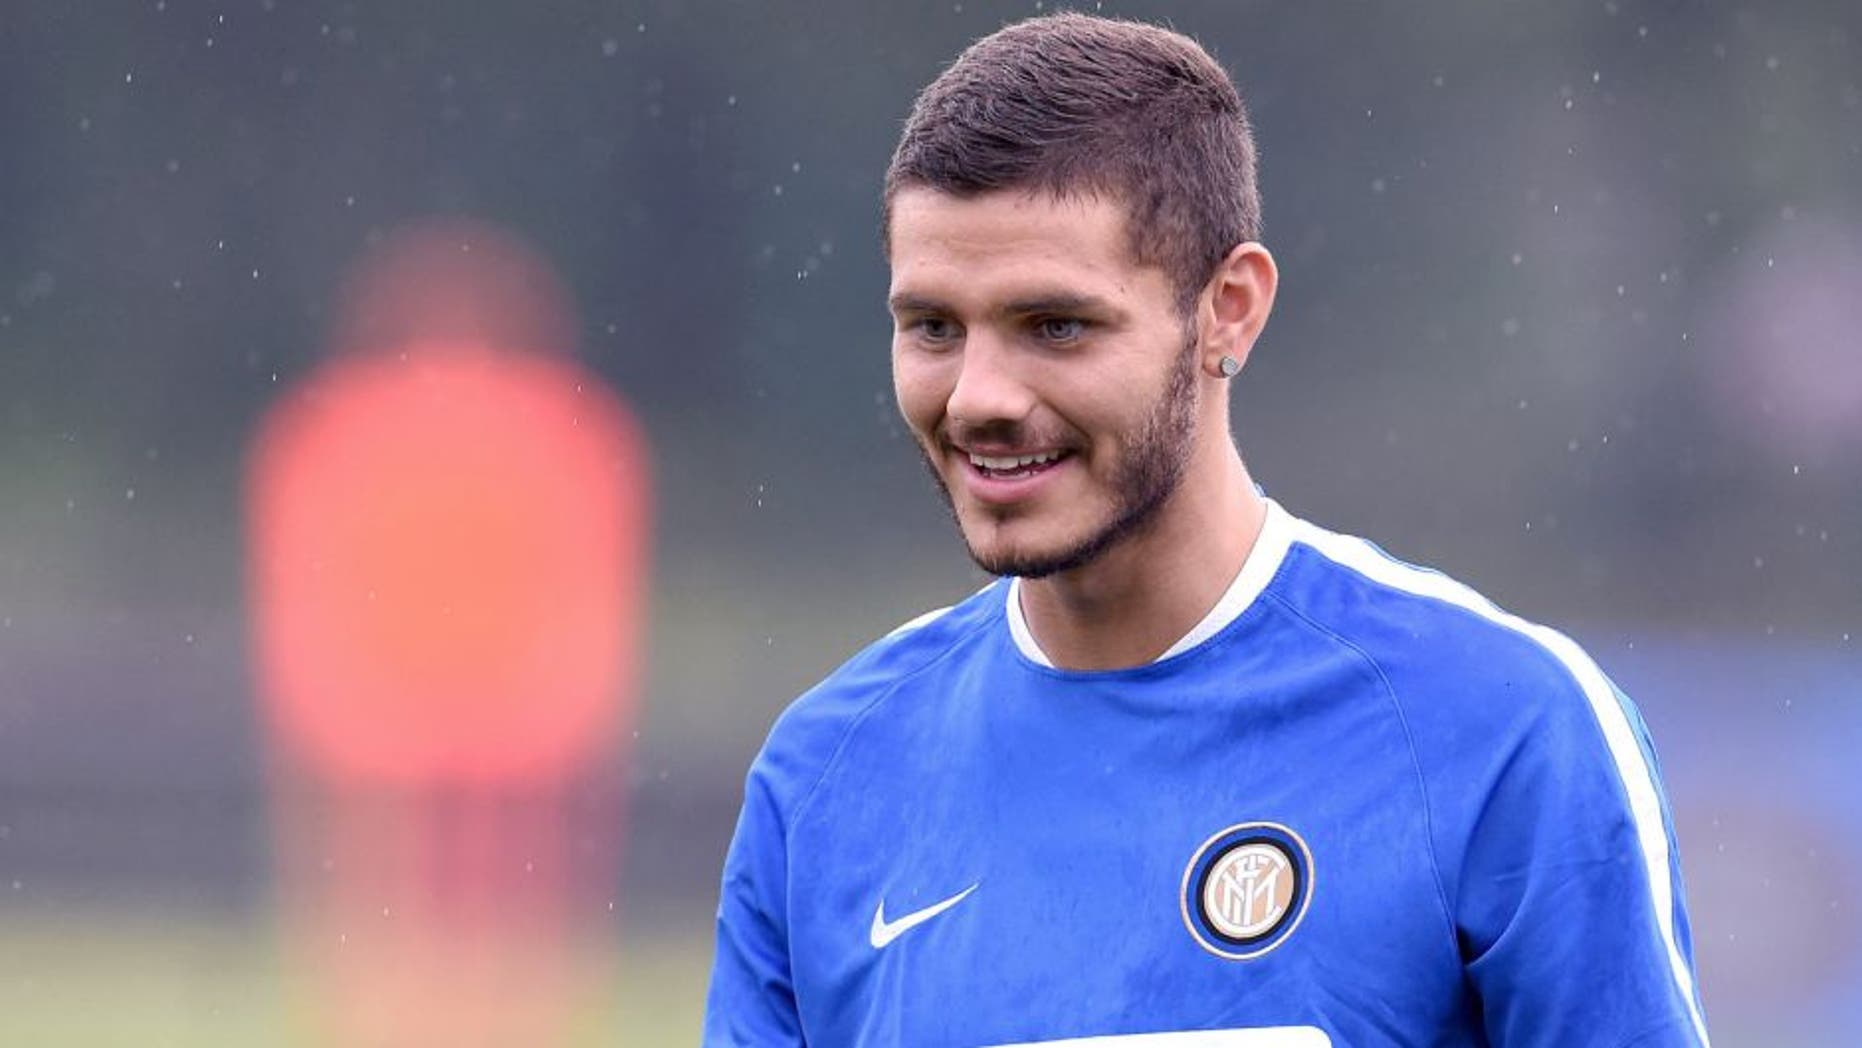 SHANGHAI, CHINA - JULY 23: Mauro Icardi of FC Internazionale looks on during a training session on July 23, 2015 in Shanghai, China. (Photo by Claudio Villa - Inter/Getty Images)